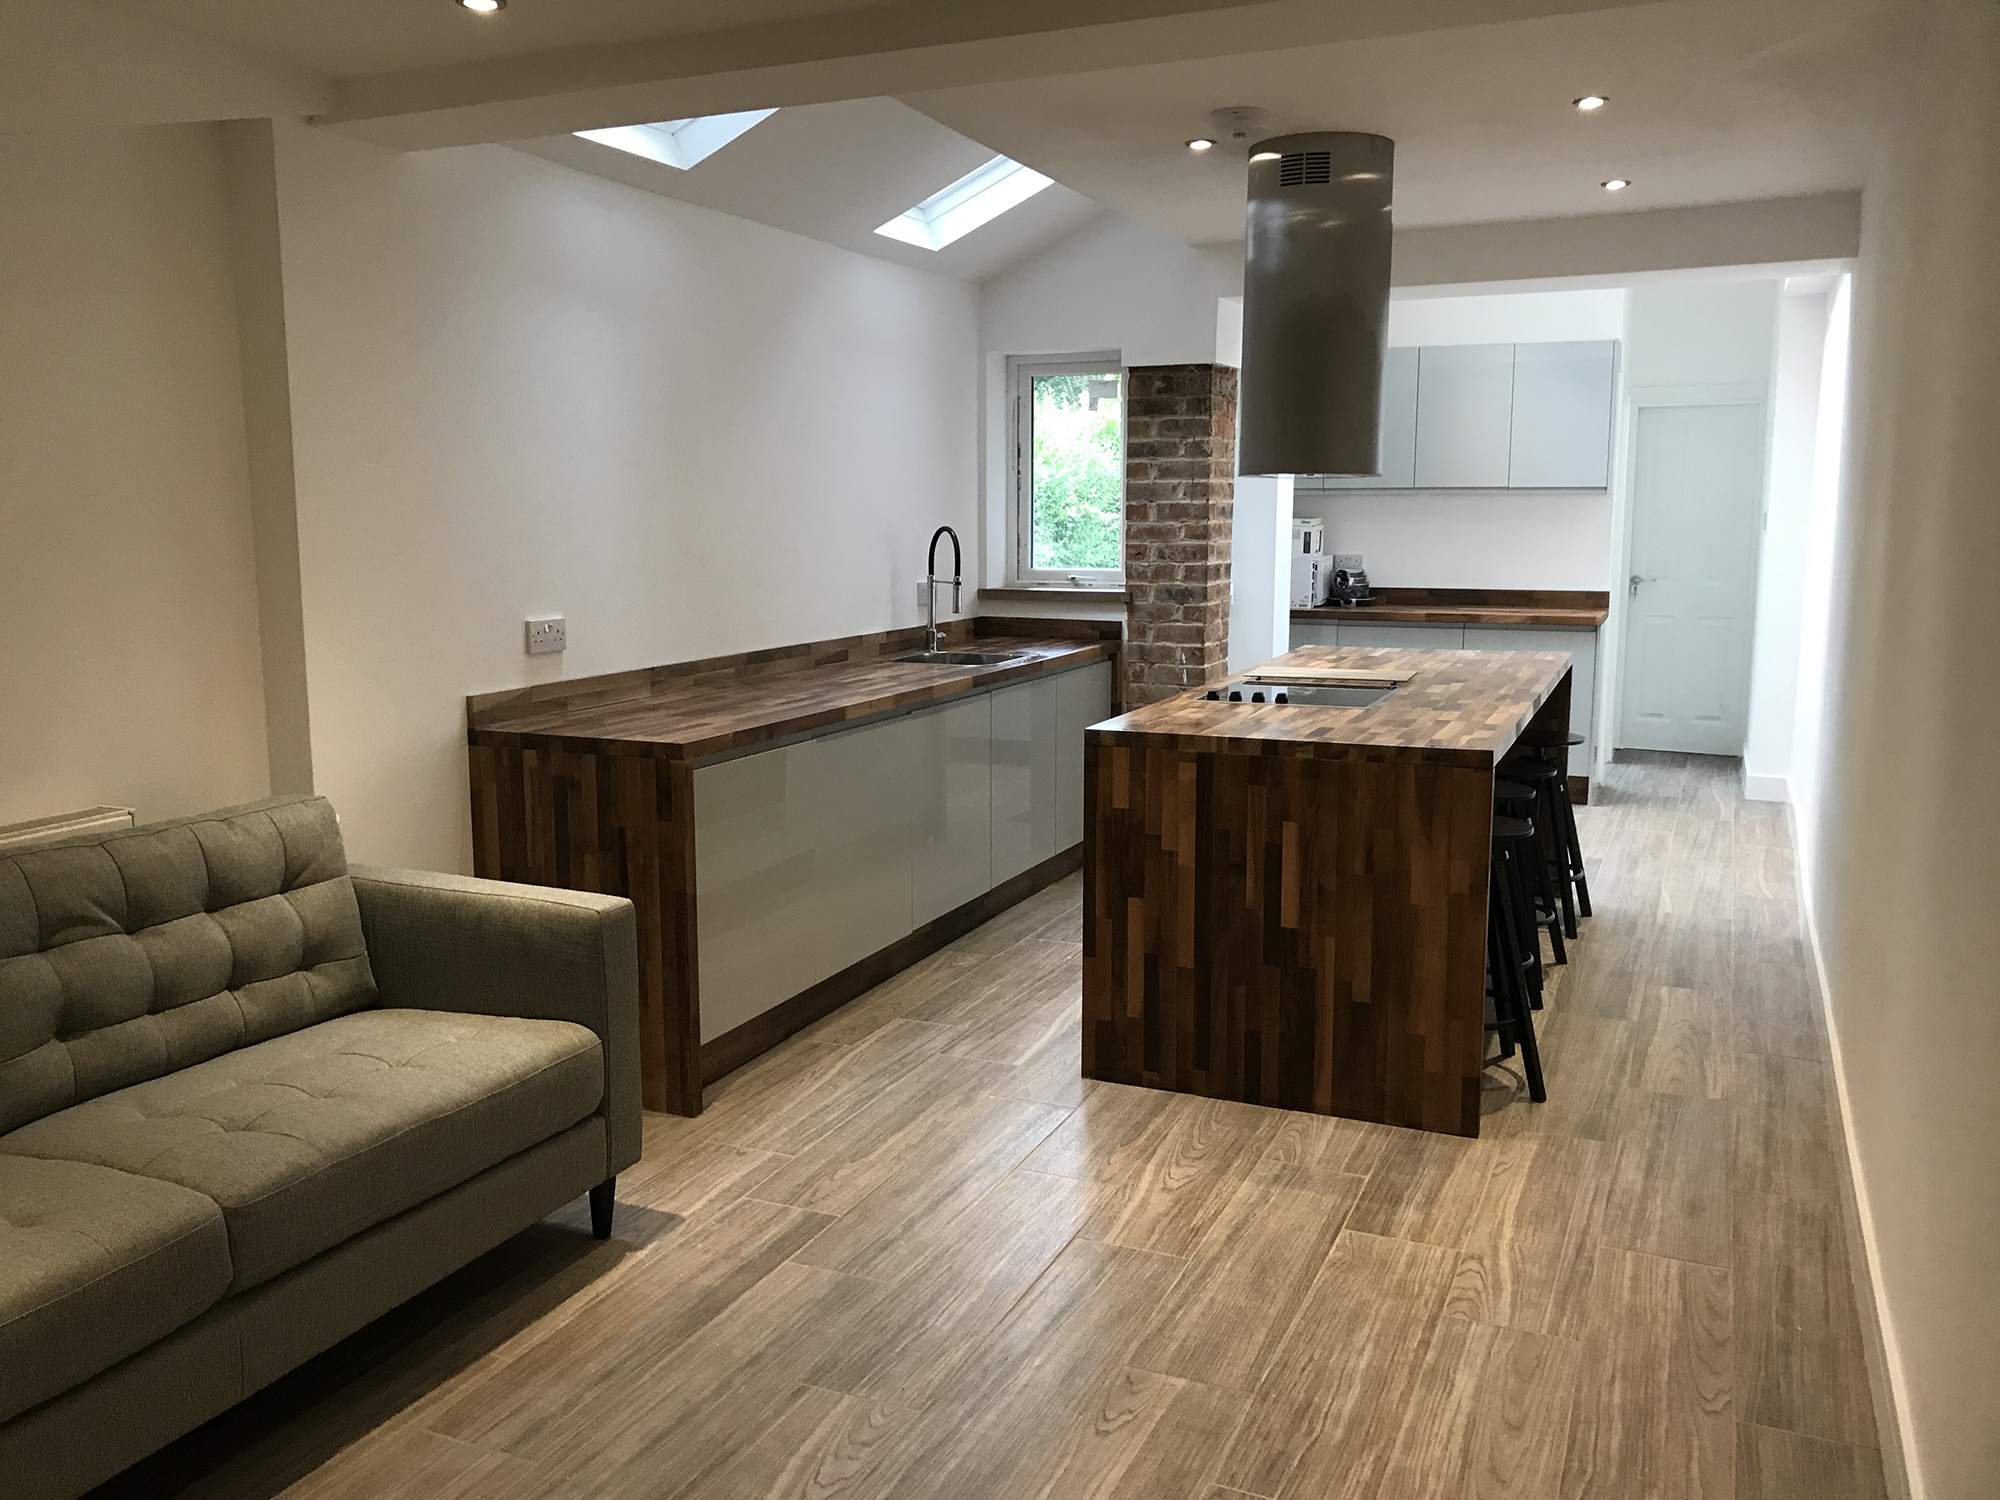 Student rental accommodation in the Selly Oak area in